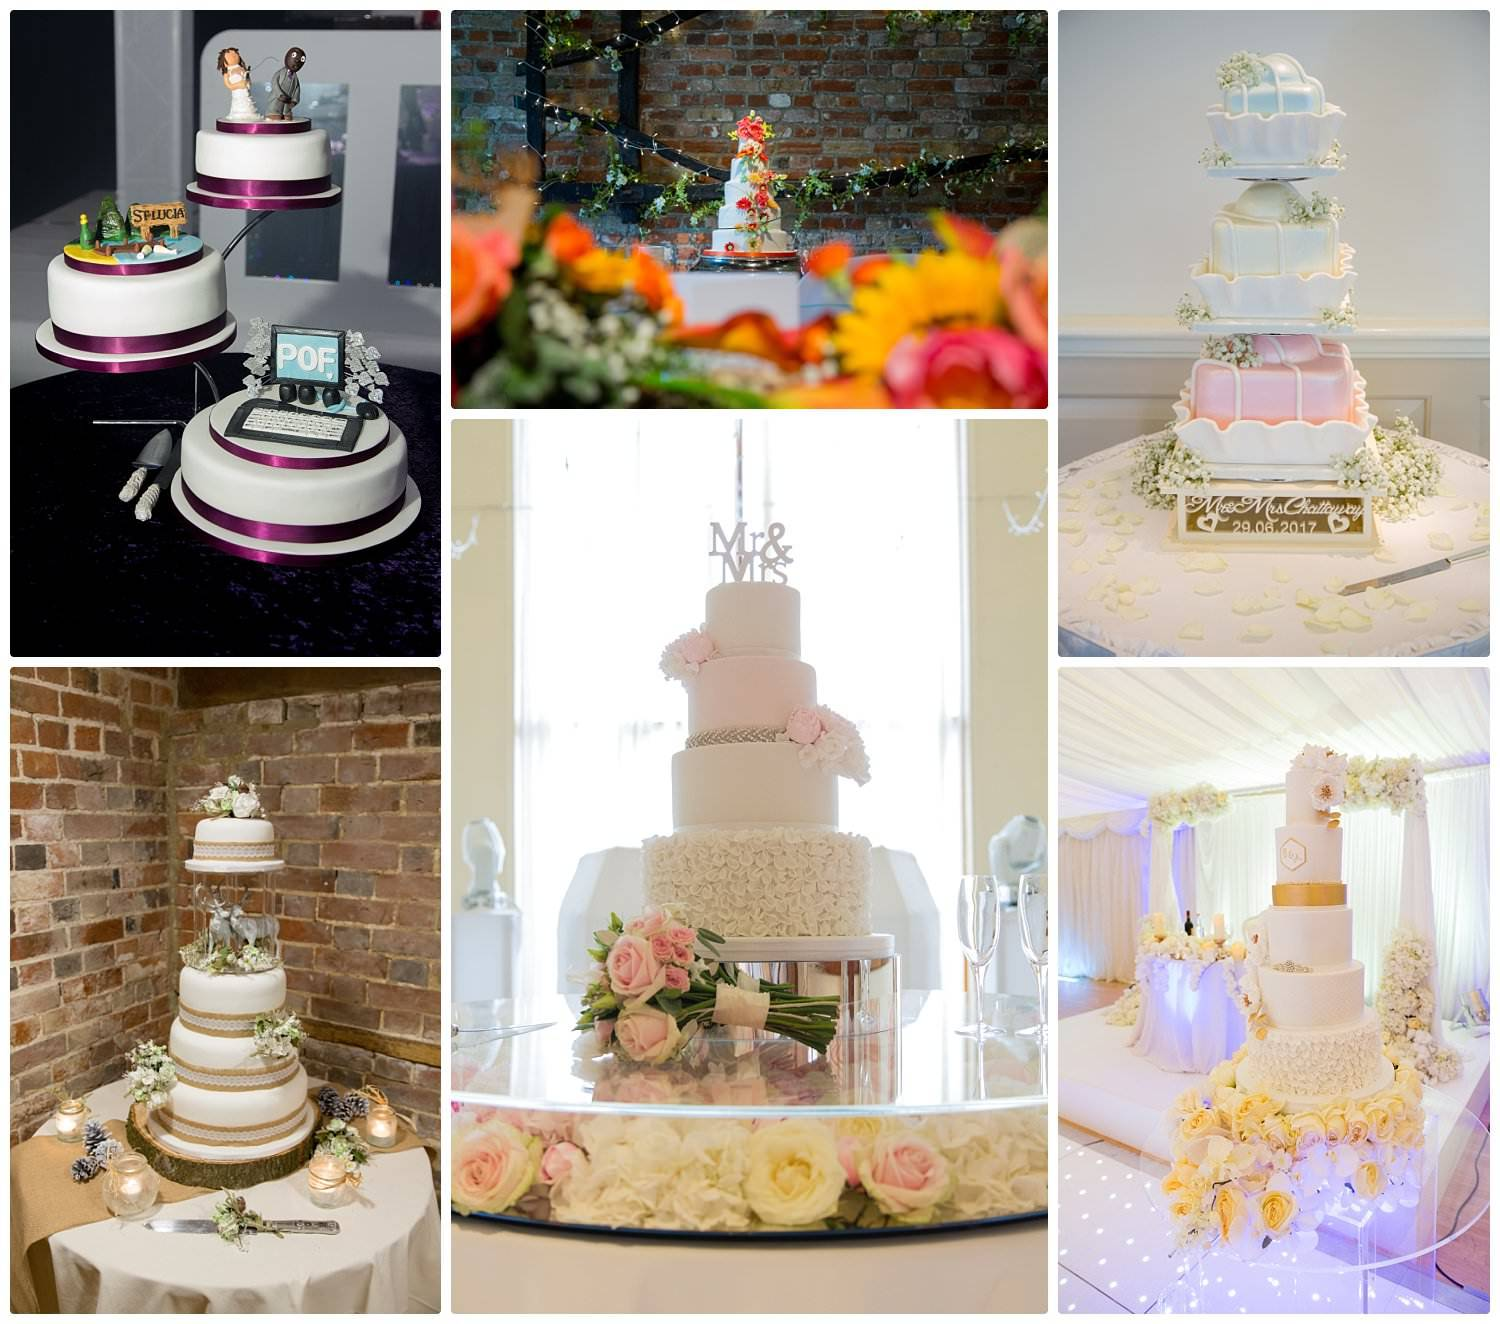 Top tips for choosing your wedding cake-Display